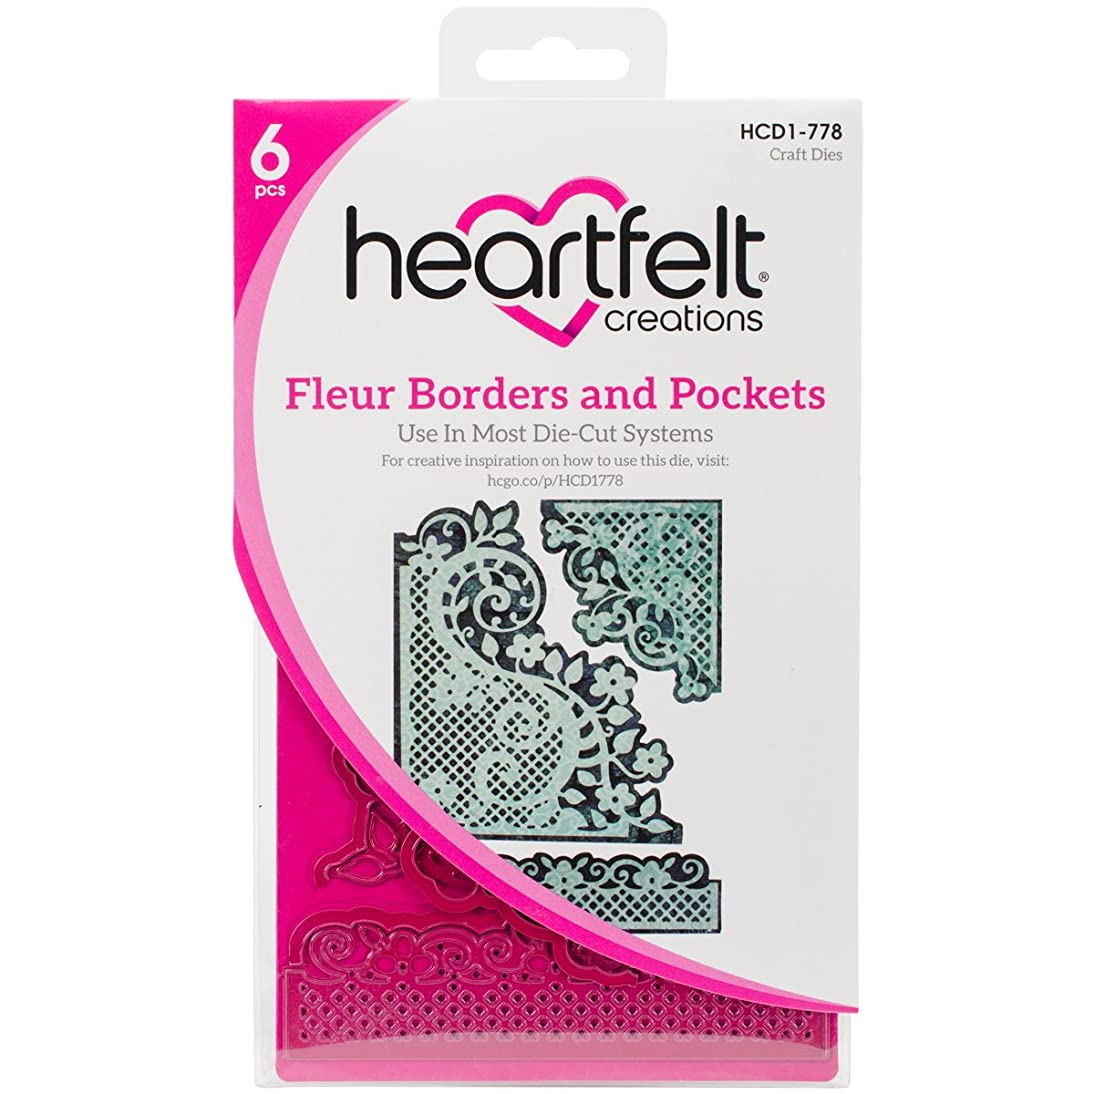 Heartfelt Creations Fleur Borders & Pockets .15